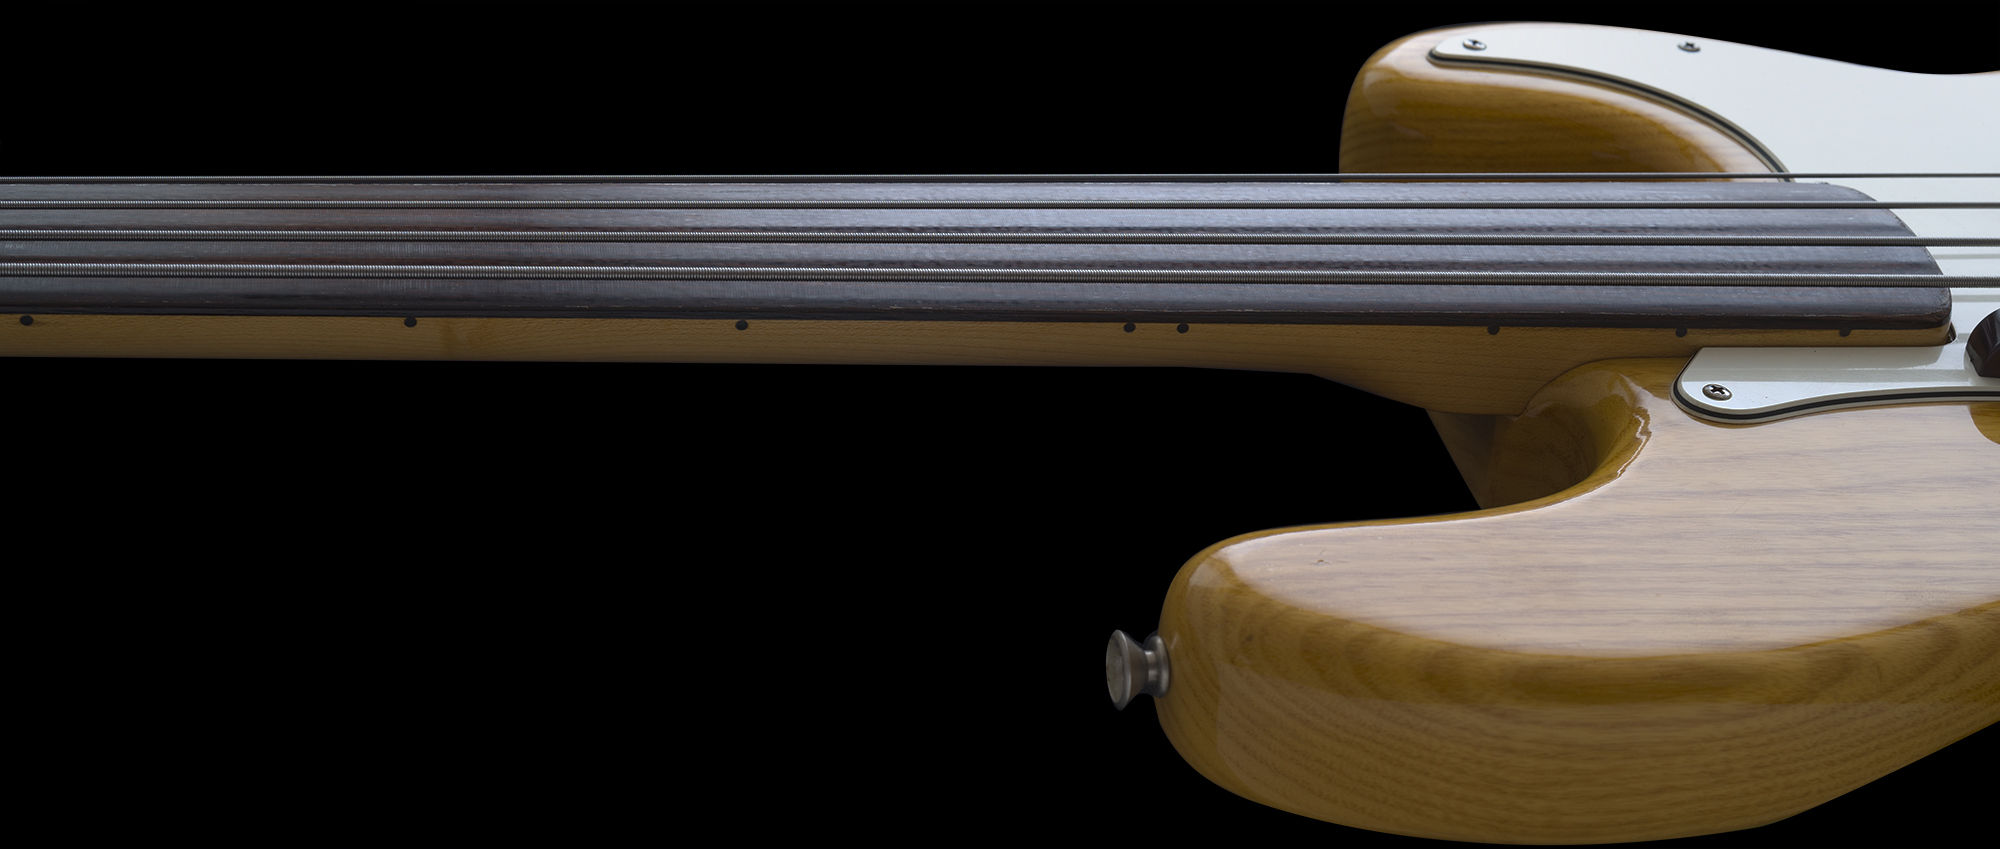 fingerboard side dots are present on Fretless Precisions